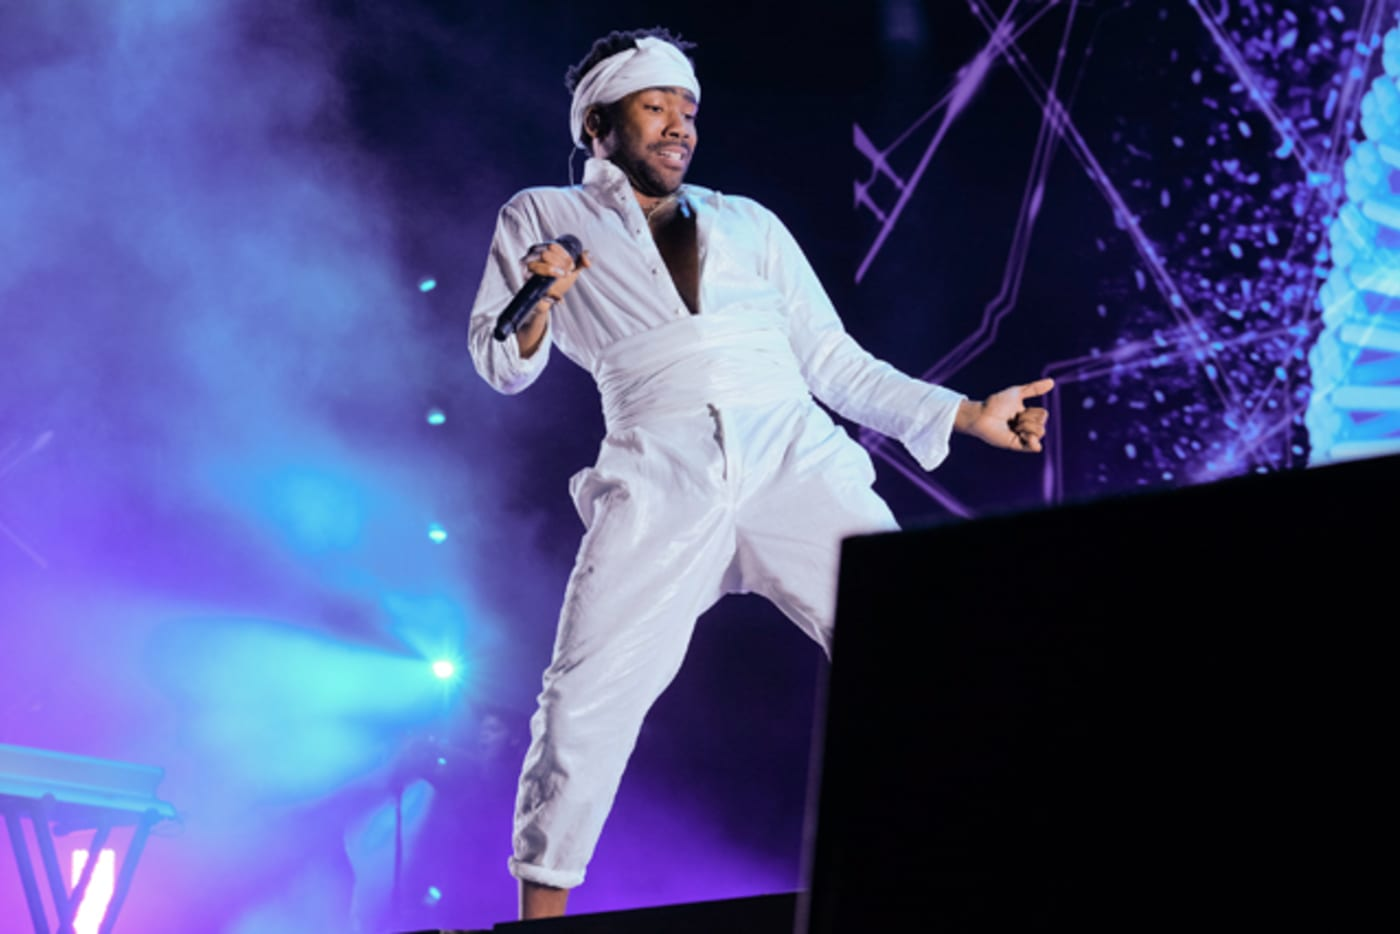 Childish Gambino performs live on stage during the 2017 Governors Ball Music Festival